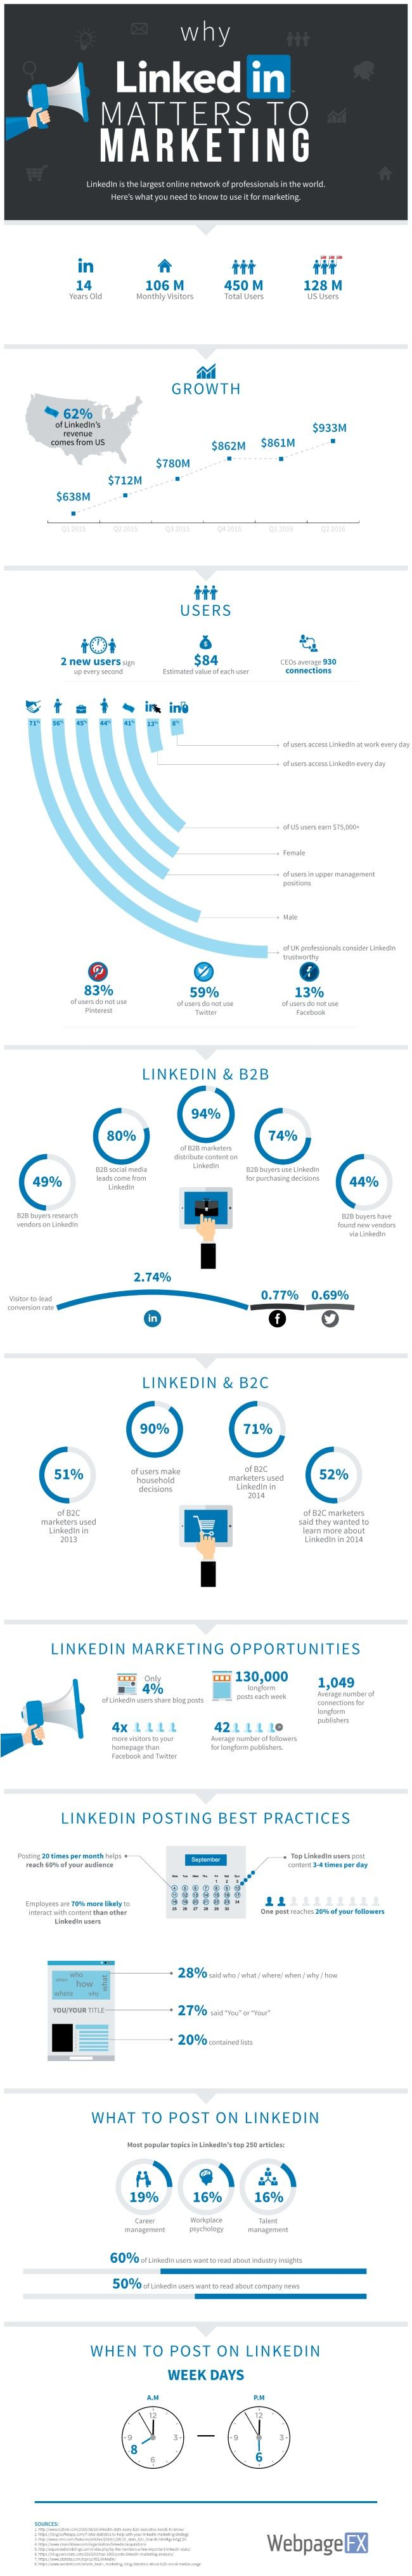 marketing via linkedin infographic posts training and ecommerce linkedin isn t just for networking for jobs it can also be a strong